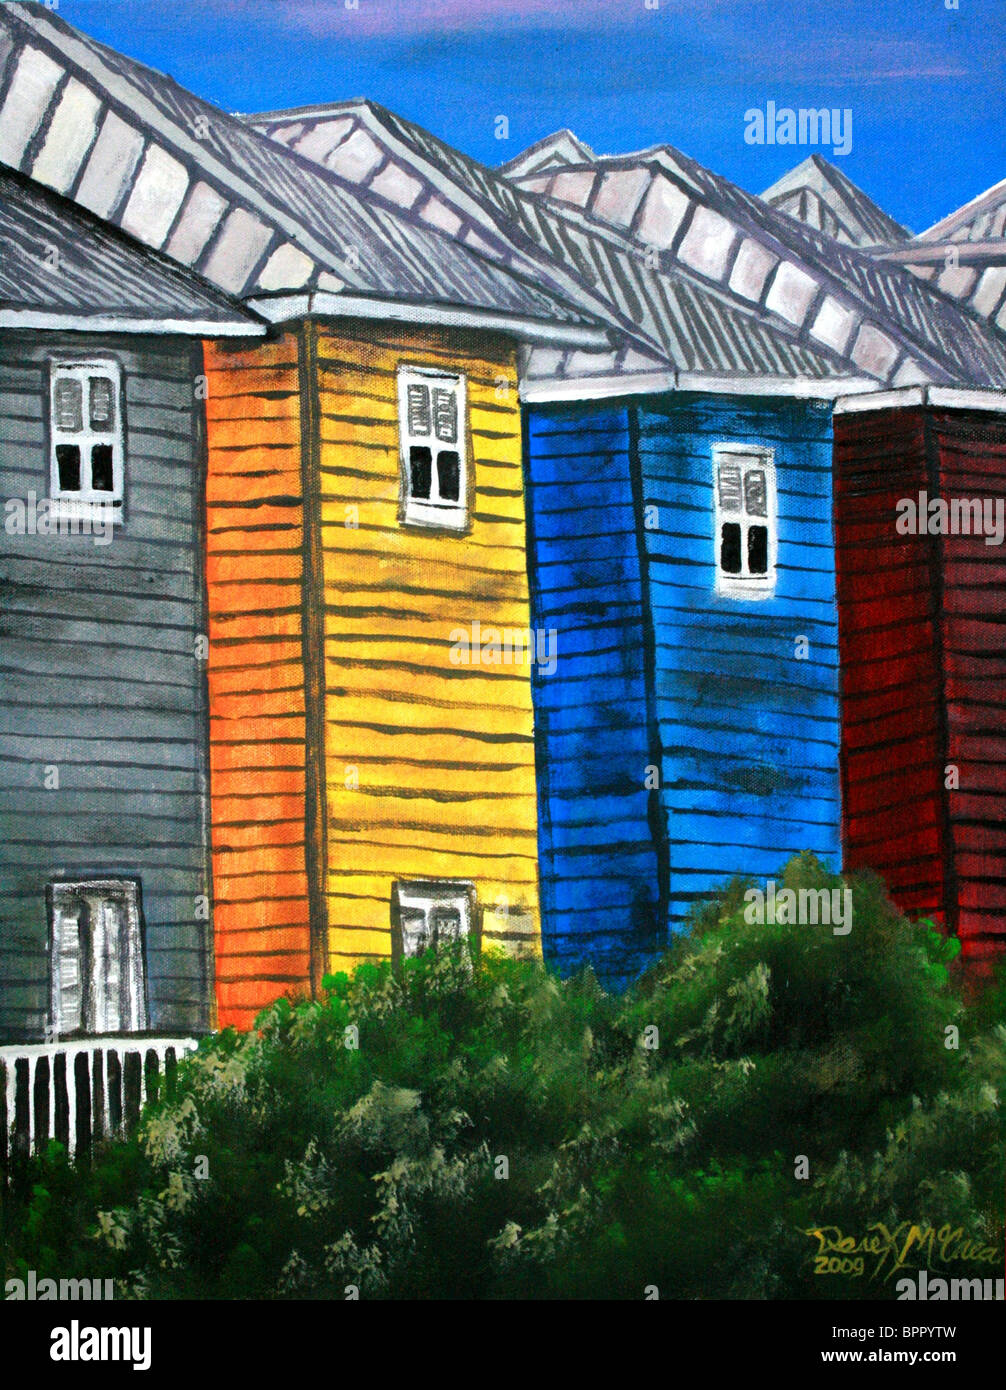 Beach houses oil painting coastal tropical art - Stock Image